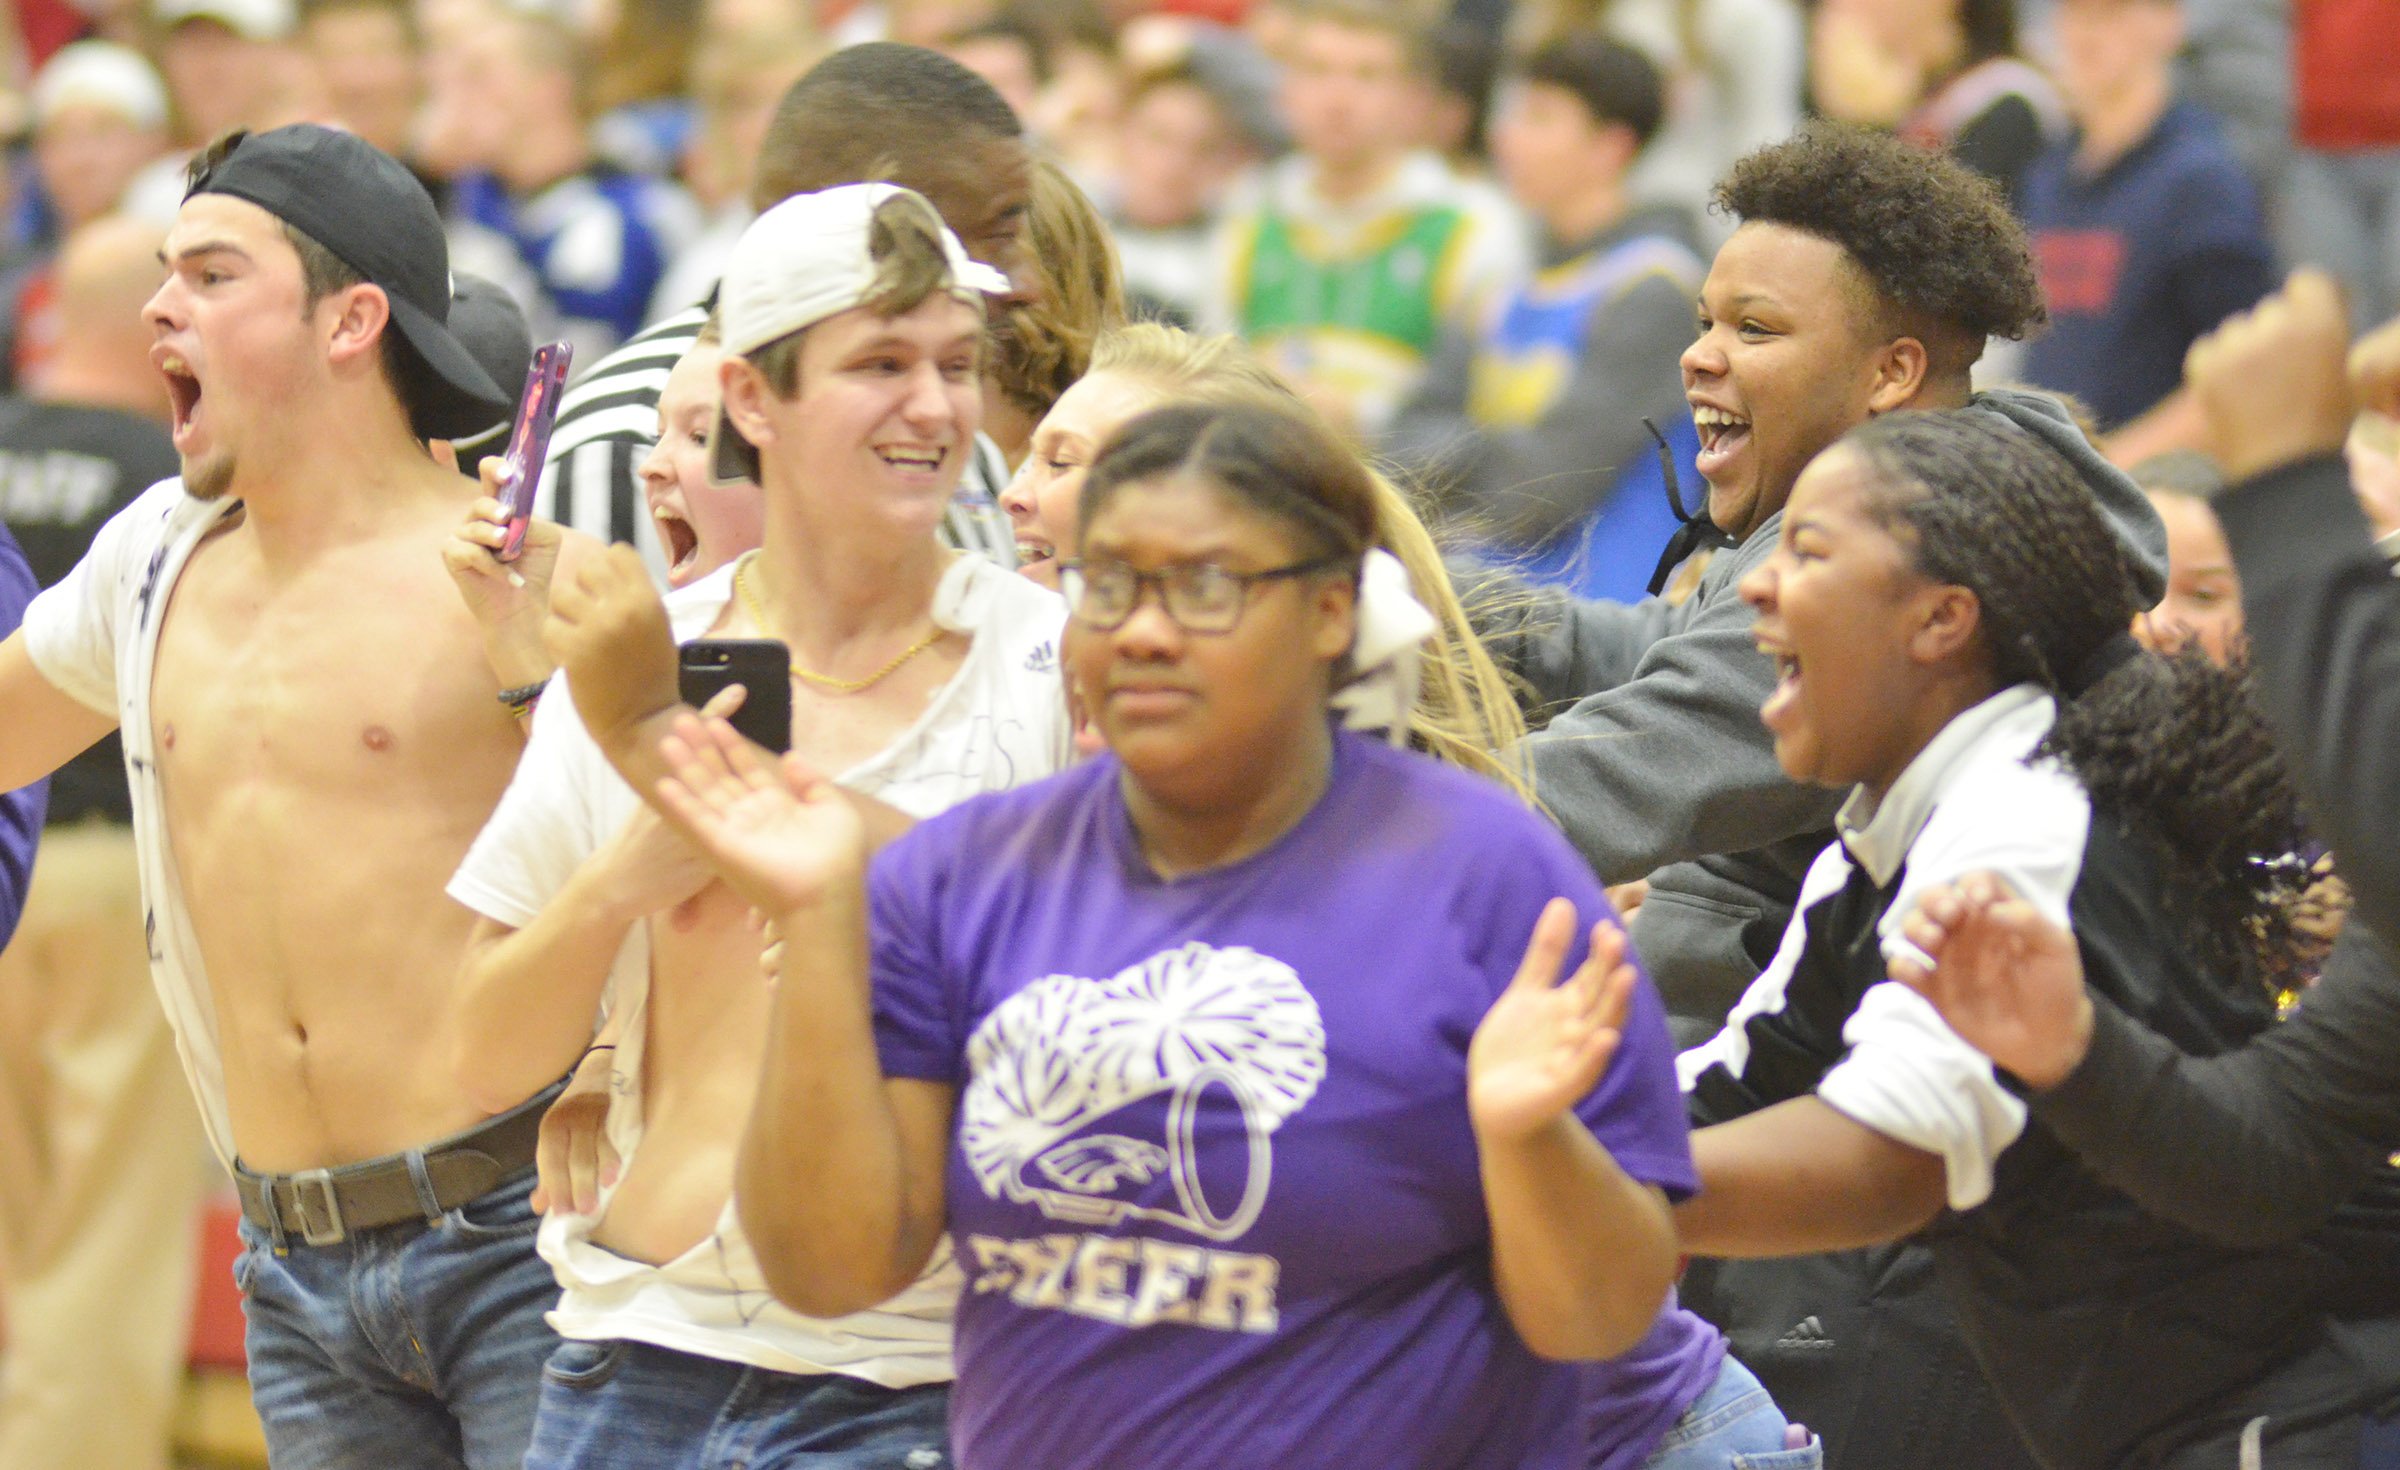 CHS students cheer after their team defeats Taylor County.